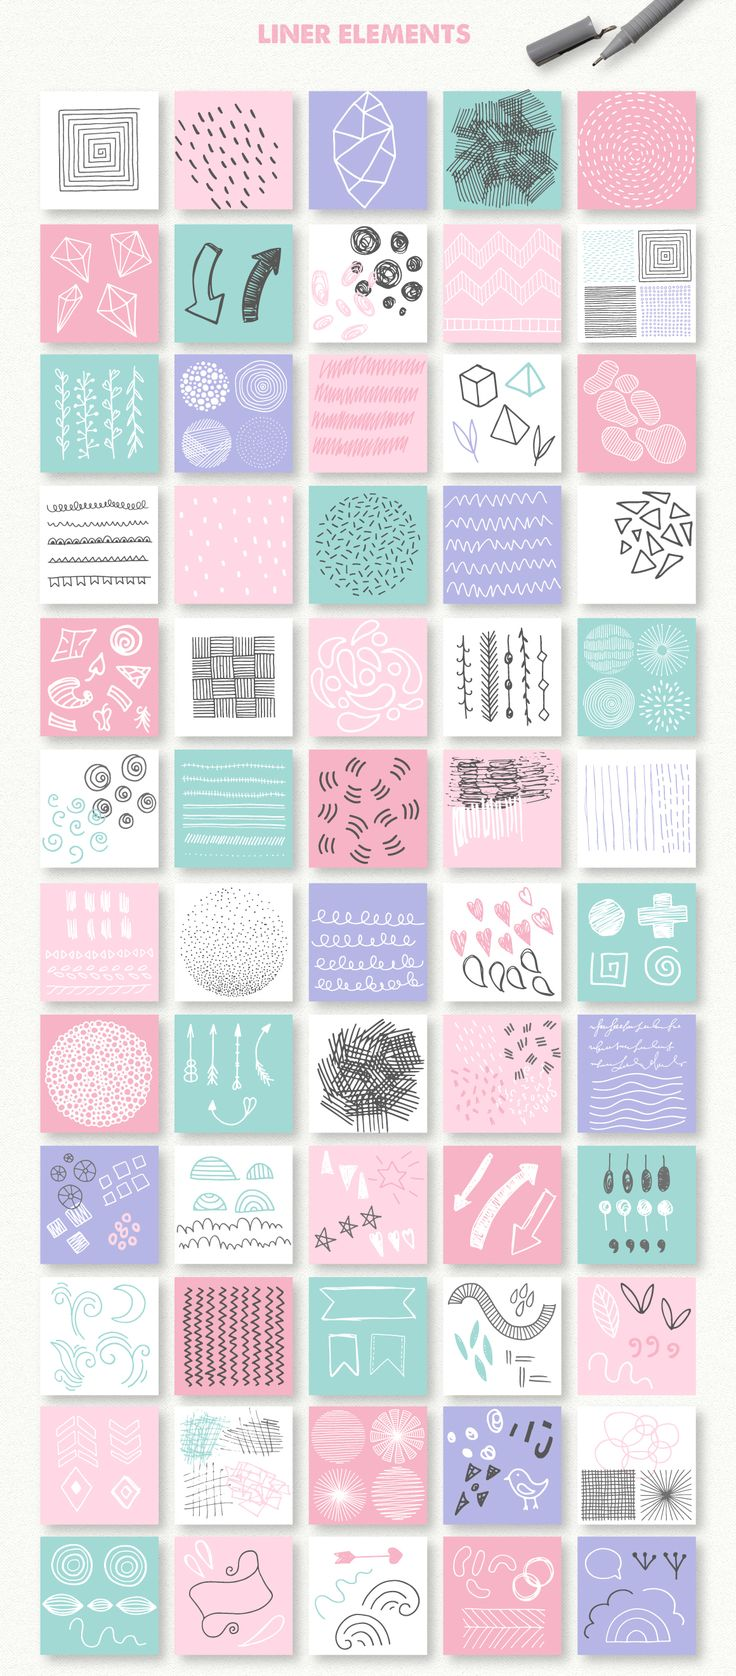 The Artistic Design Resources is an amazing toolkit contains a huge collection of quality design resources at an affordable price.